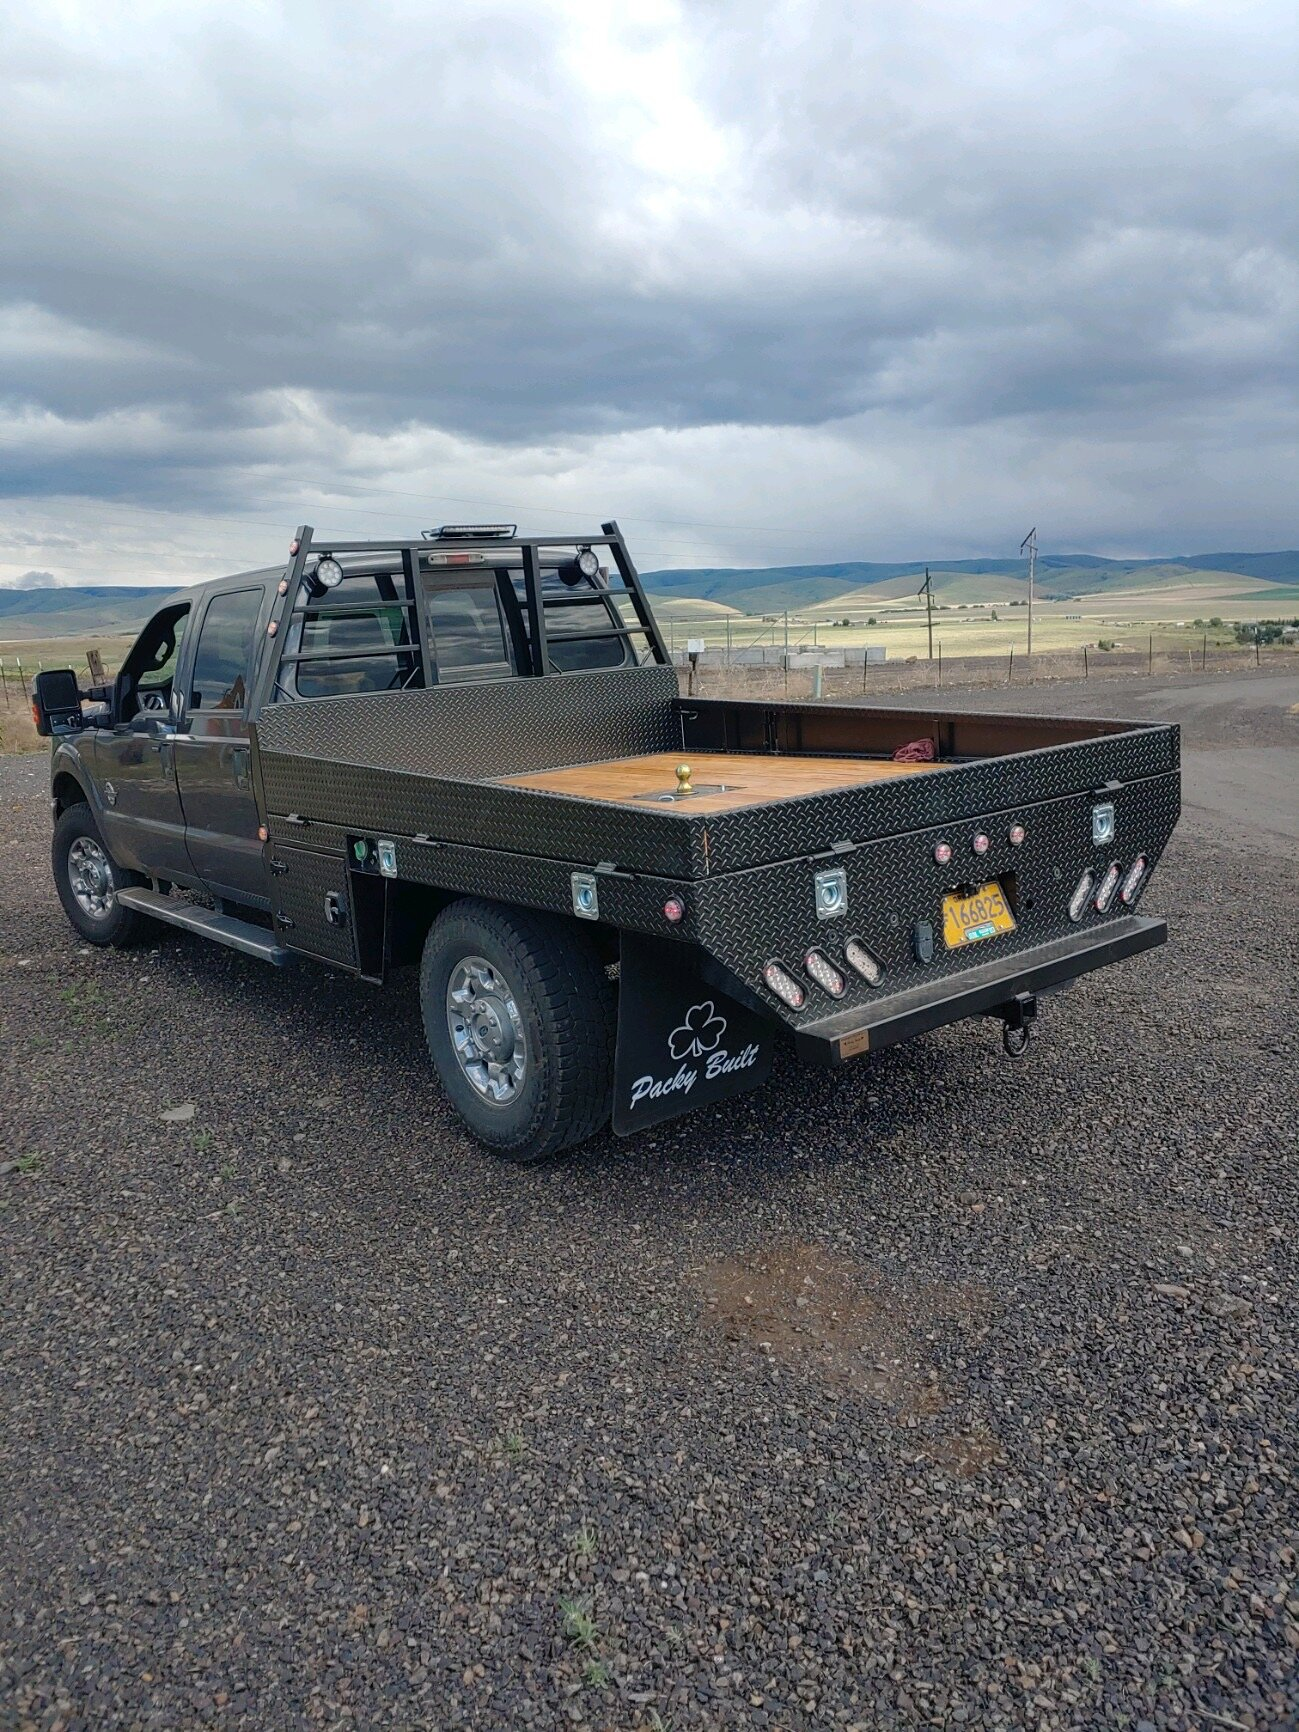 2019 F350 Flatbed : flatbed, Packy, Built, Steel, Flatbed, DOHERTY, WELDING, Where, Quality, Craftsmanship, Welded, Products.